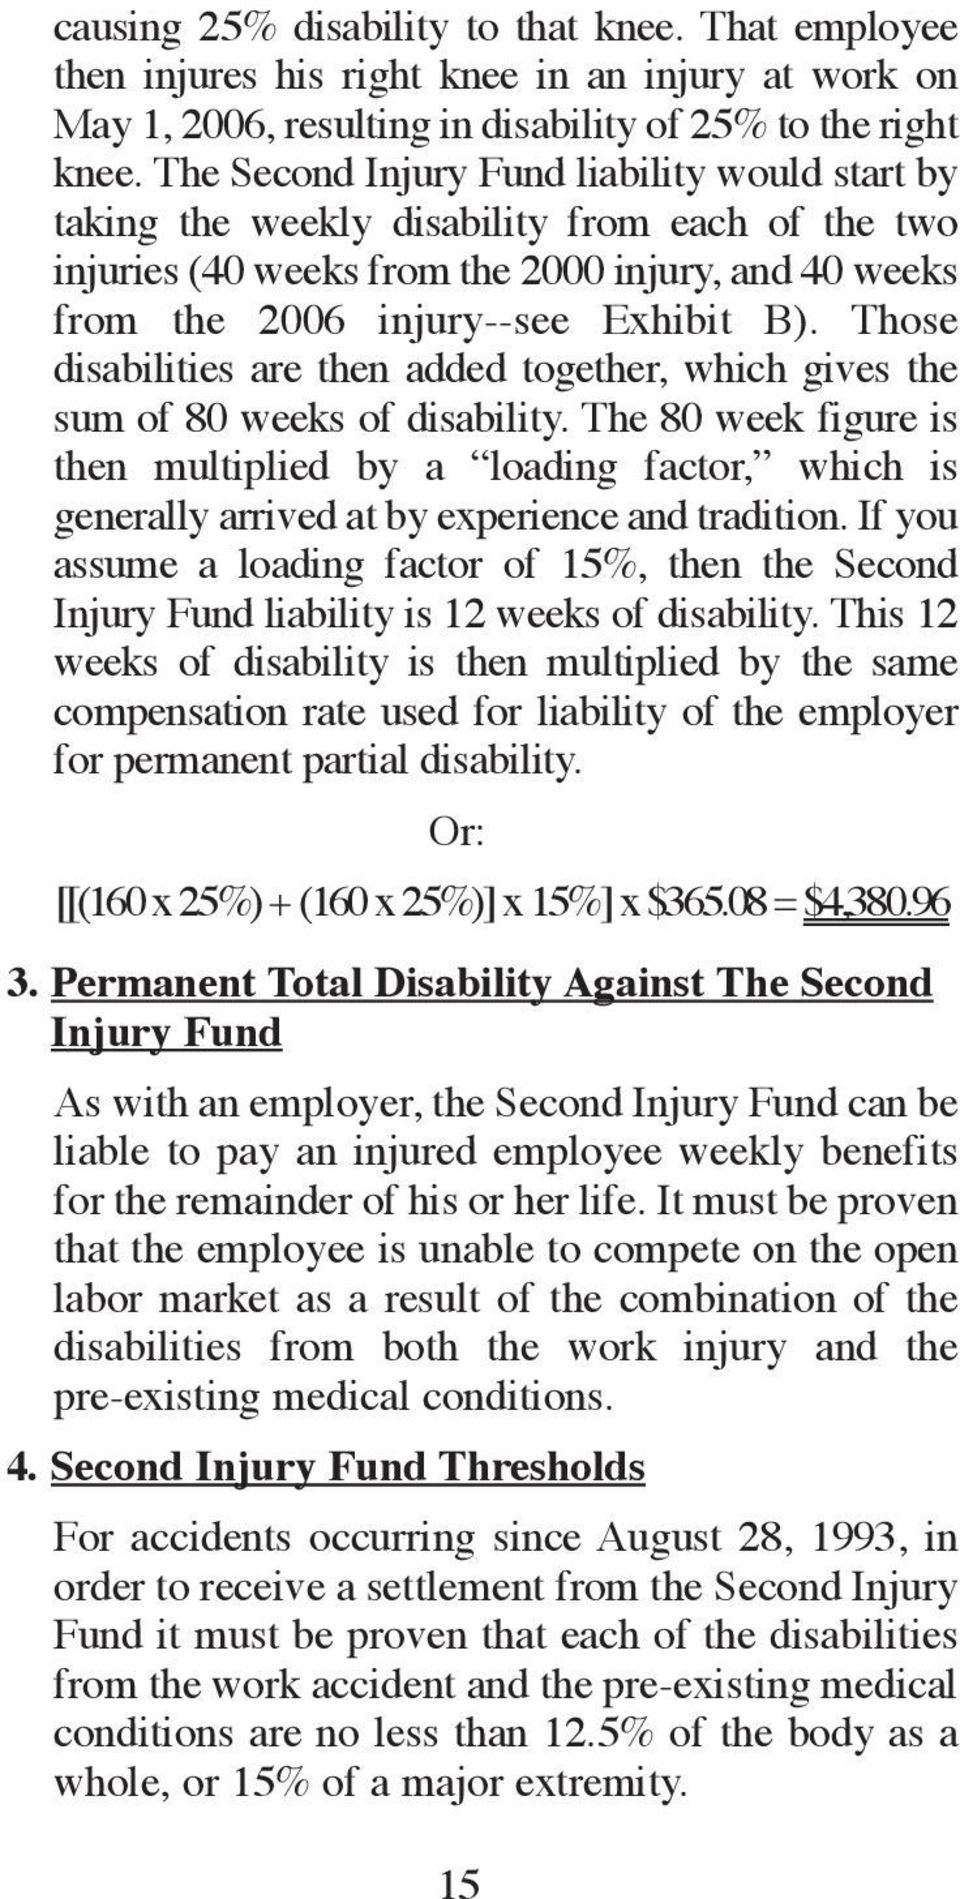 Those disabilities are then added together, which gives the sum of 80 weeks of disability.